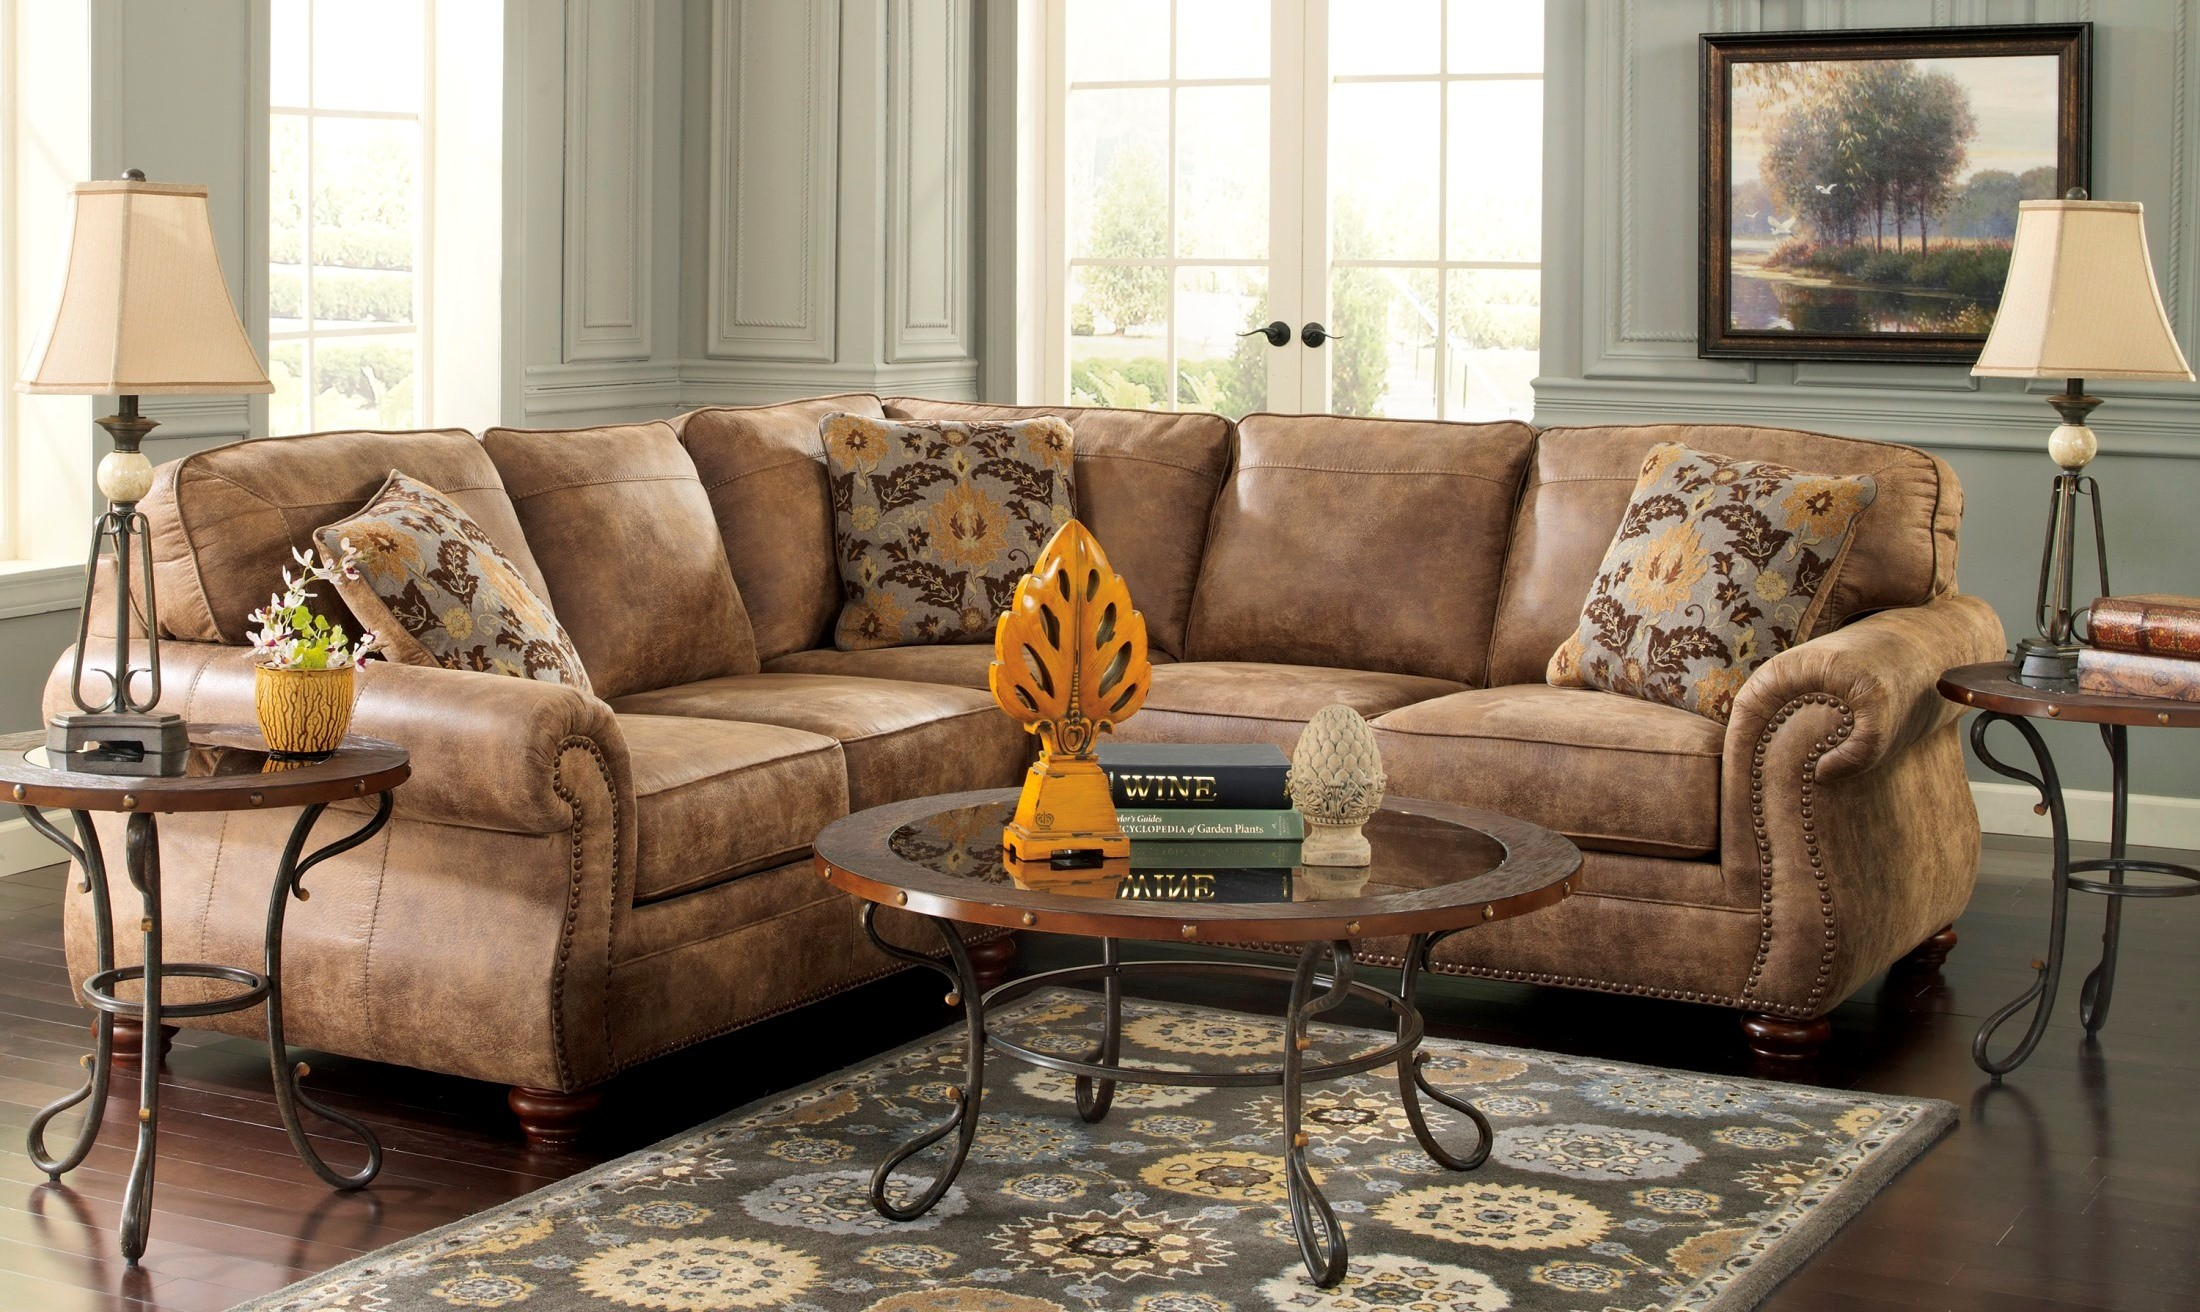 Larkinhurst Earth Laf Sectional From Ashley 31901 55 67 Coleman Furniture